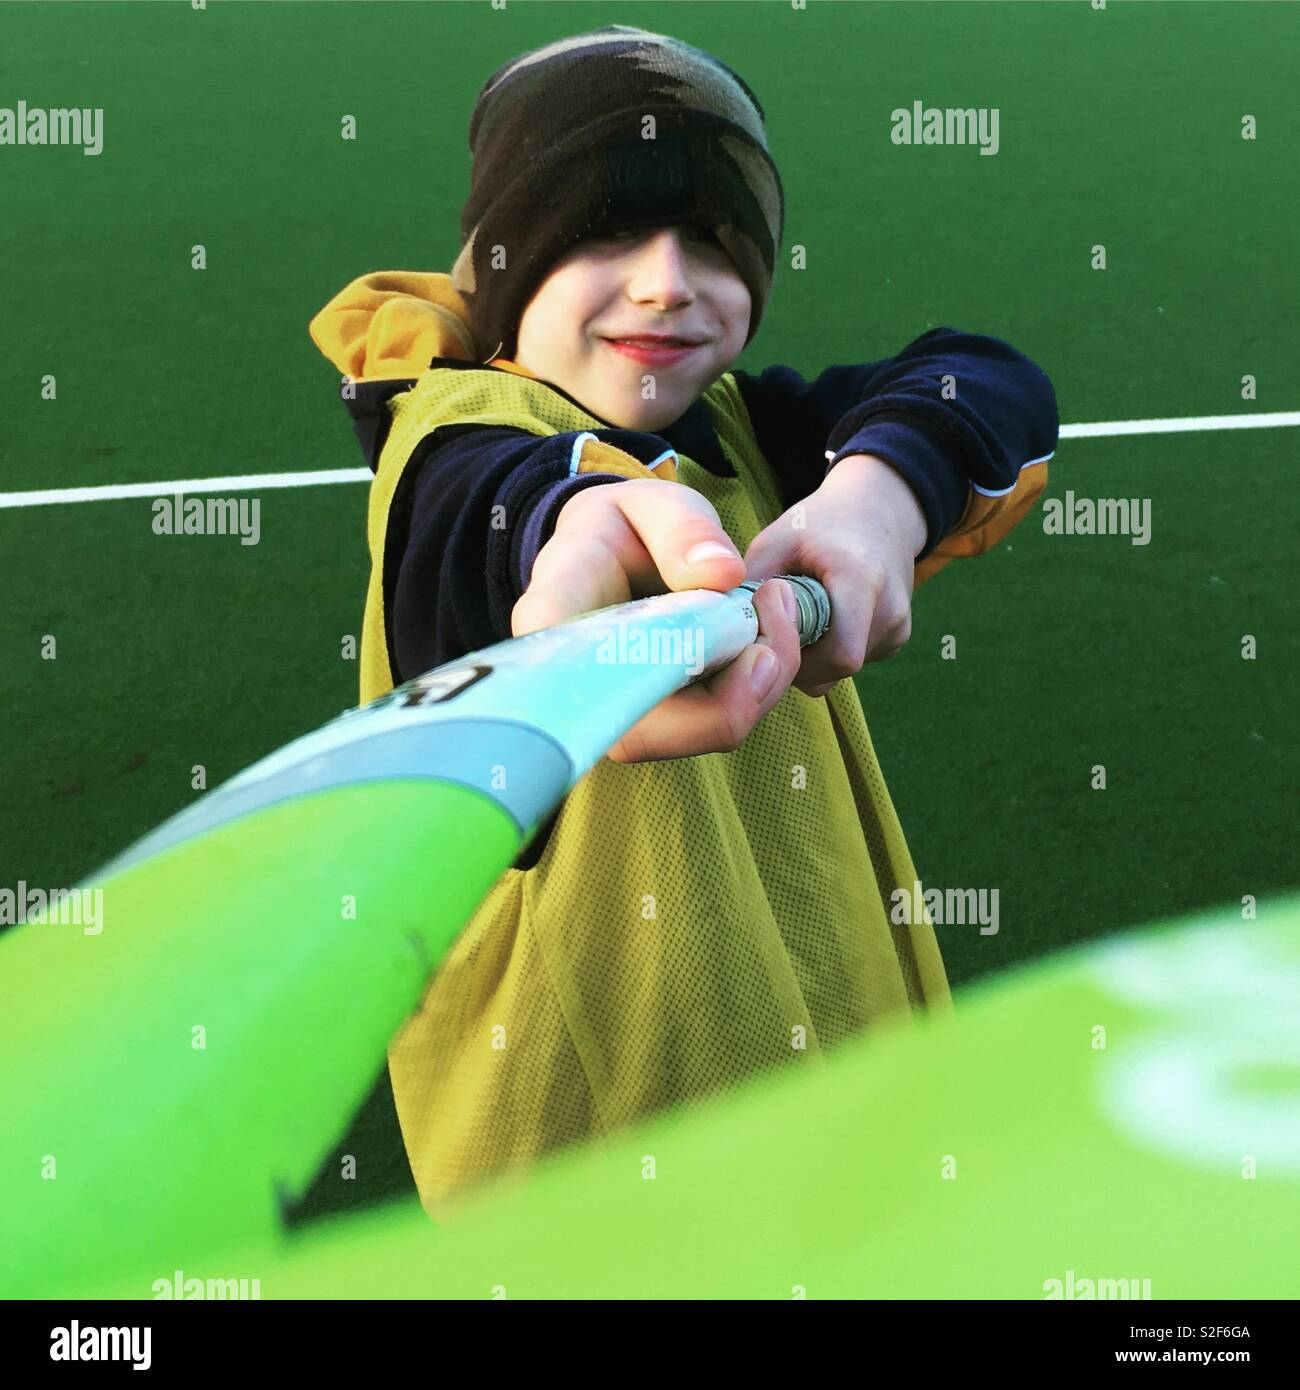 Nine year old boy playing hockey on a AstroTurf pitch. Stock Photo